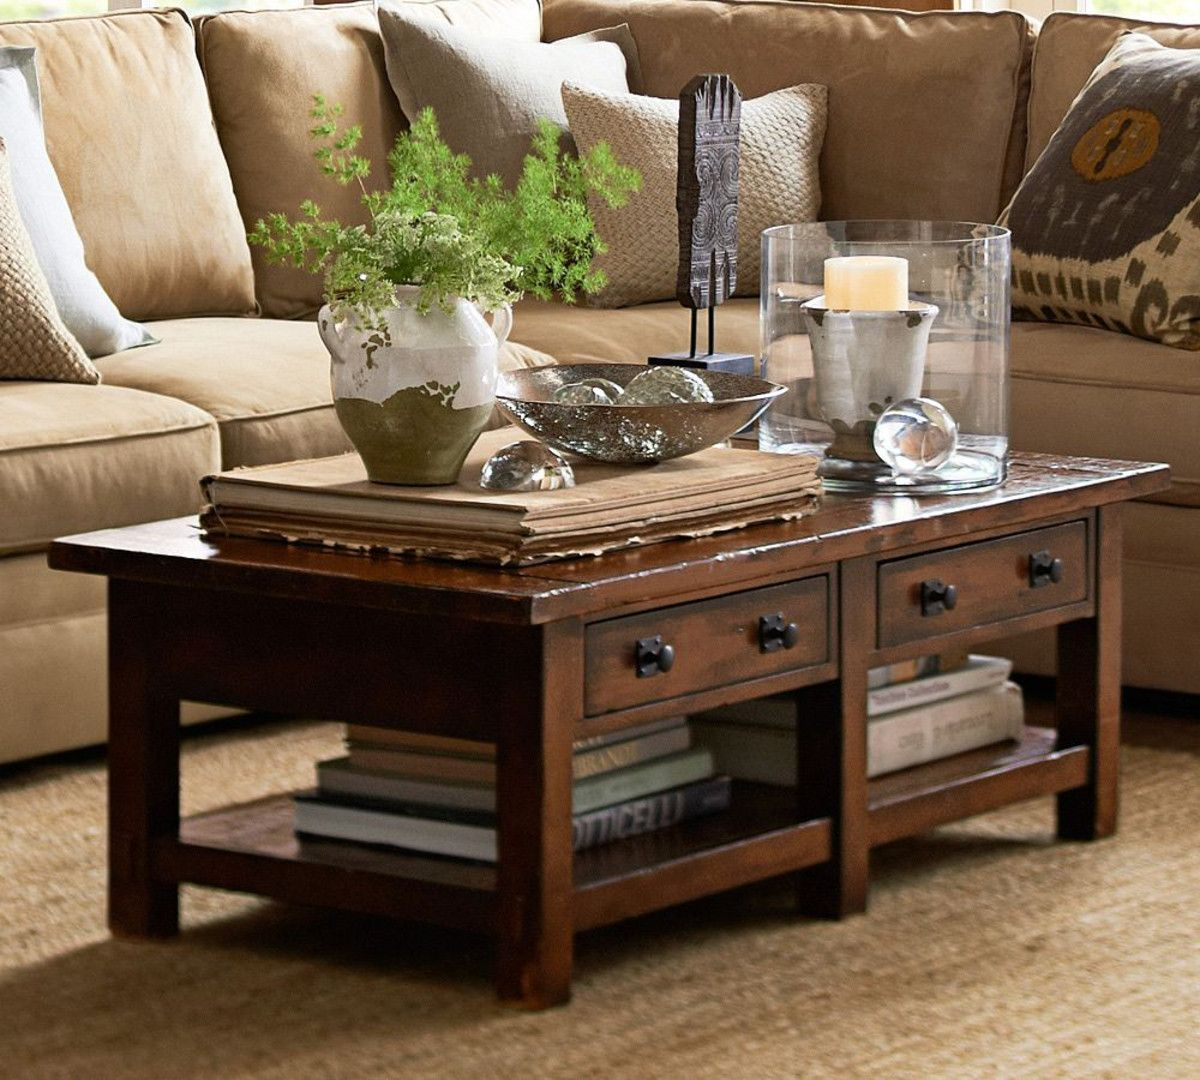 Benchwright Coffee Table Rustic Mahogany Stain Pottery Barn Au Ideas For The House